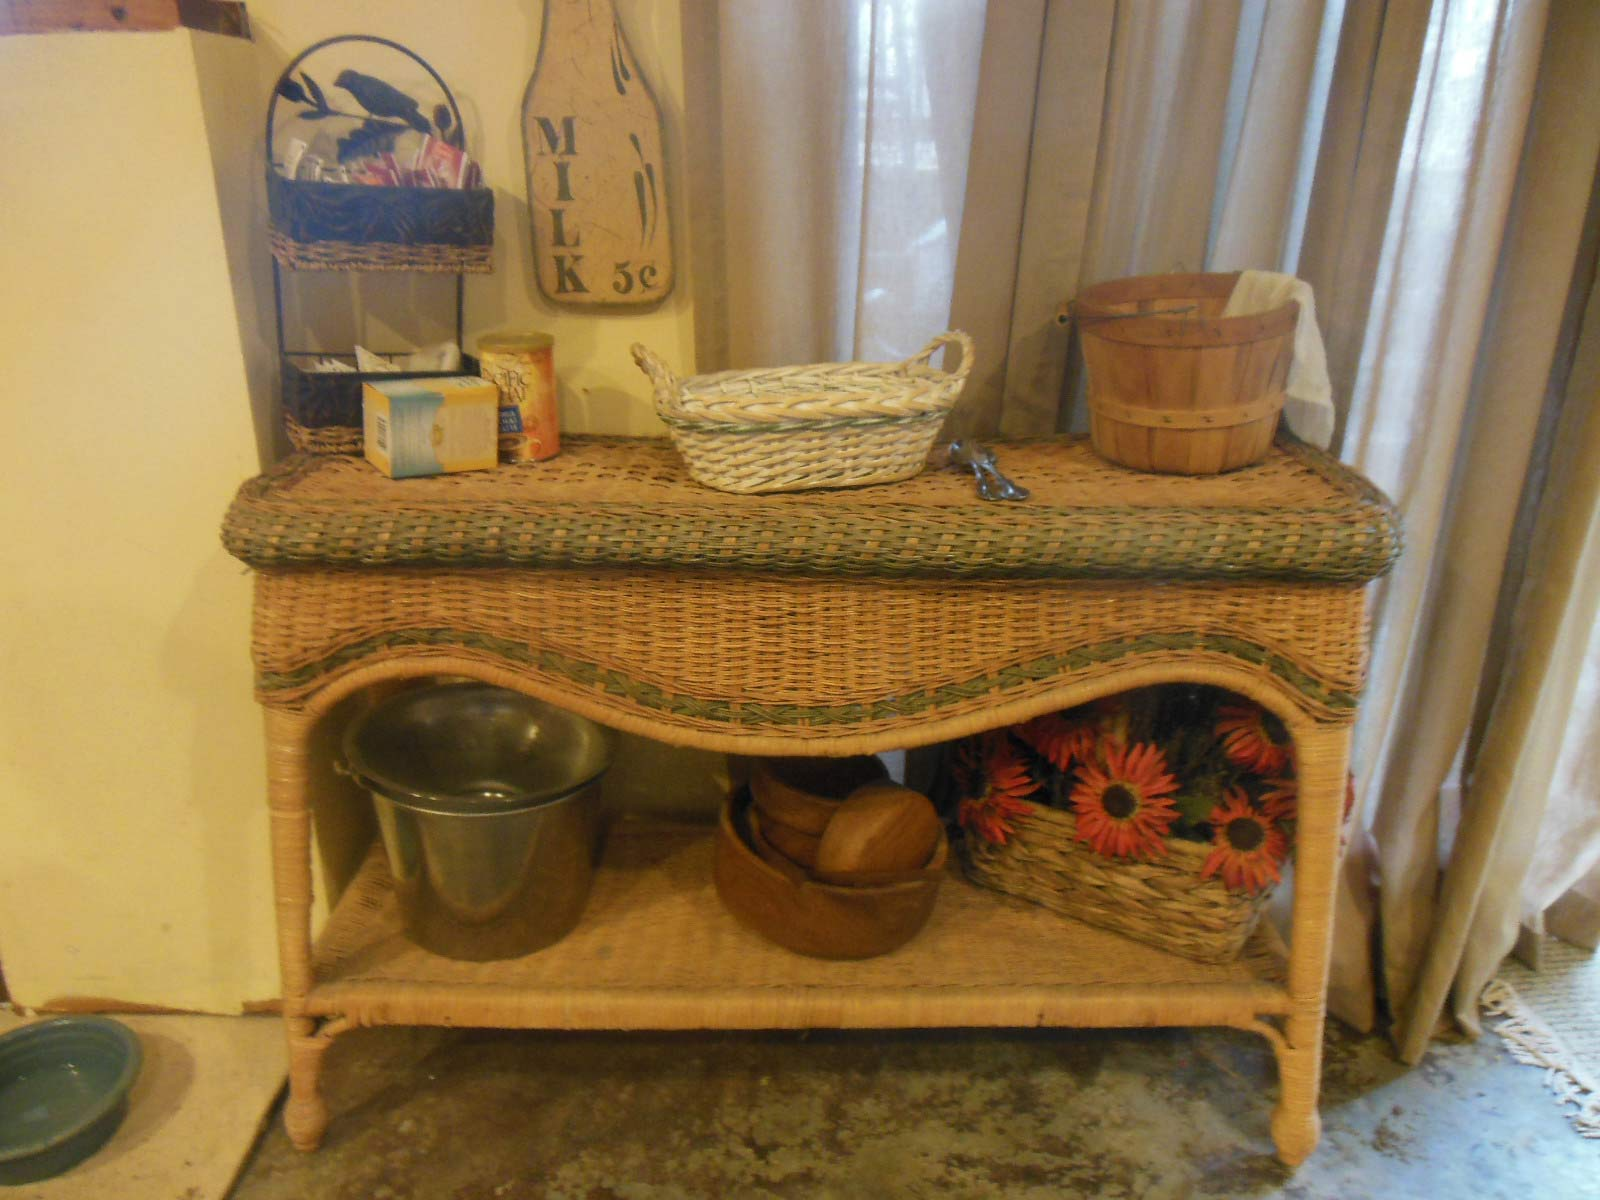 Lovely wicker table from a farm house